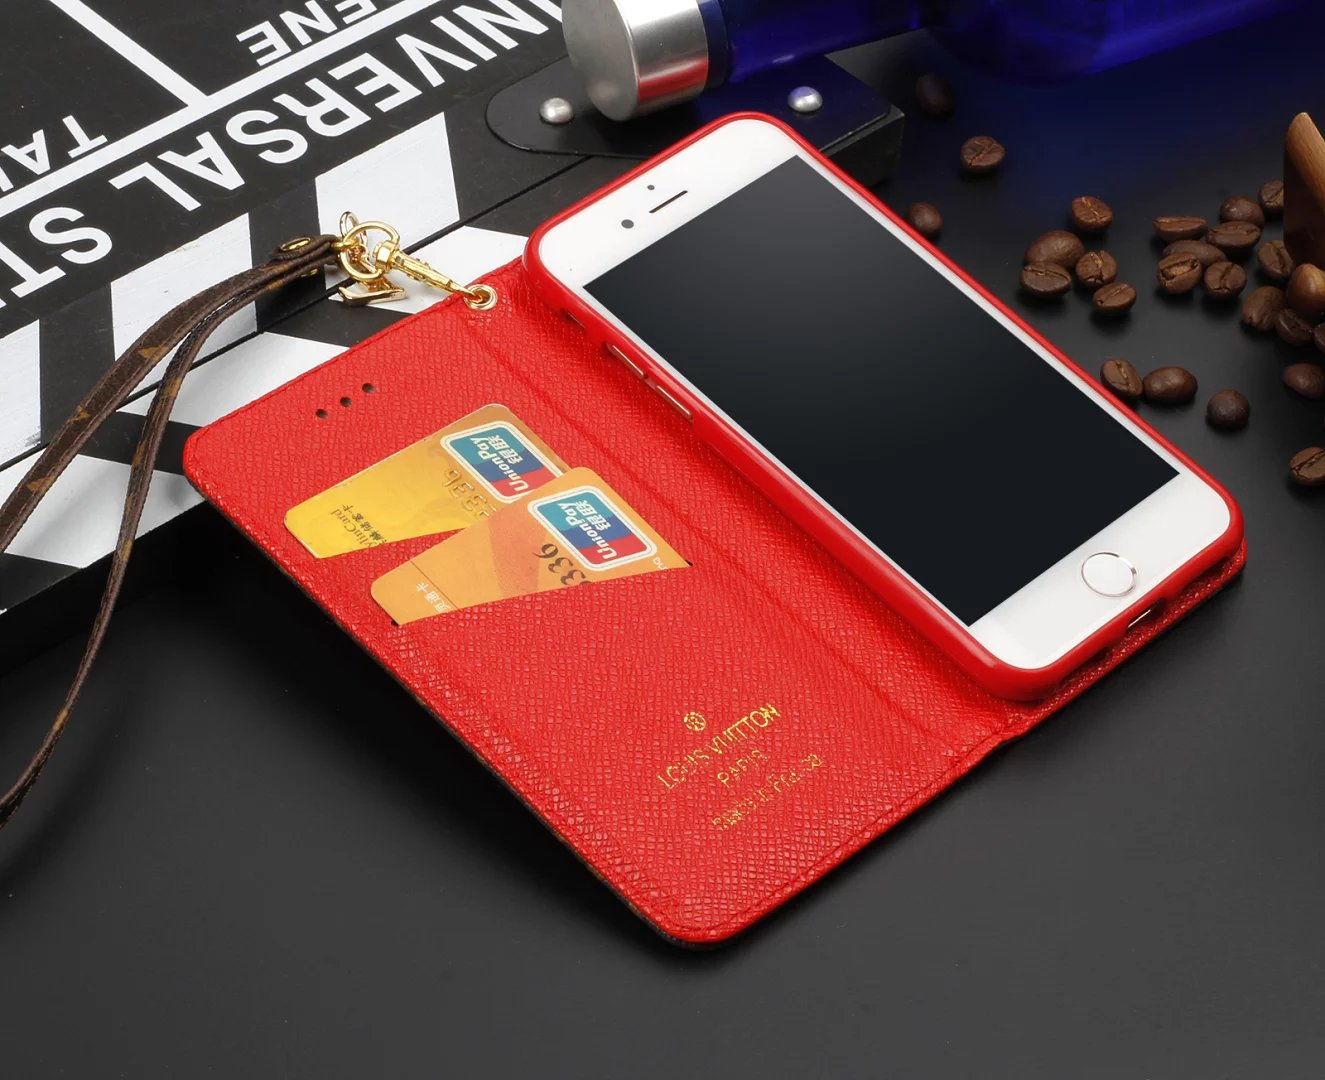 handy hülle iphone iphone hülle selbst gestalten Louis Vuitton iphone 8 hüllen iphone 8 hale apple iphone 8 a8 leder iphone 8 hülle 8lbst basteln iphone 8 goldene hülle ipjone 8 apple iphone schutzhülle